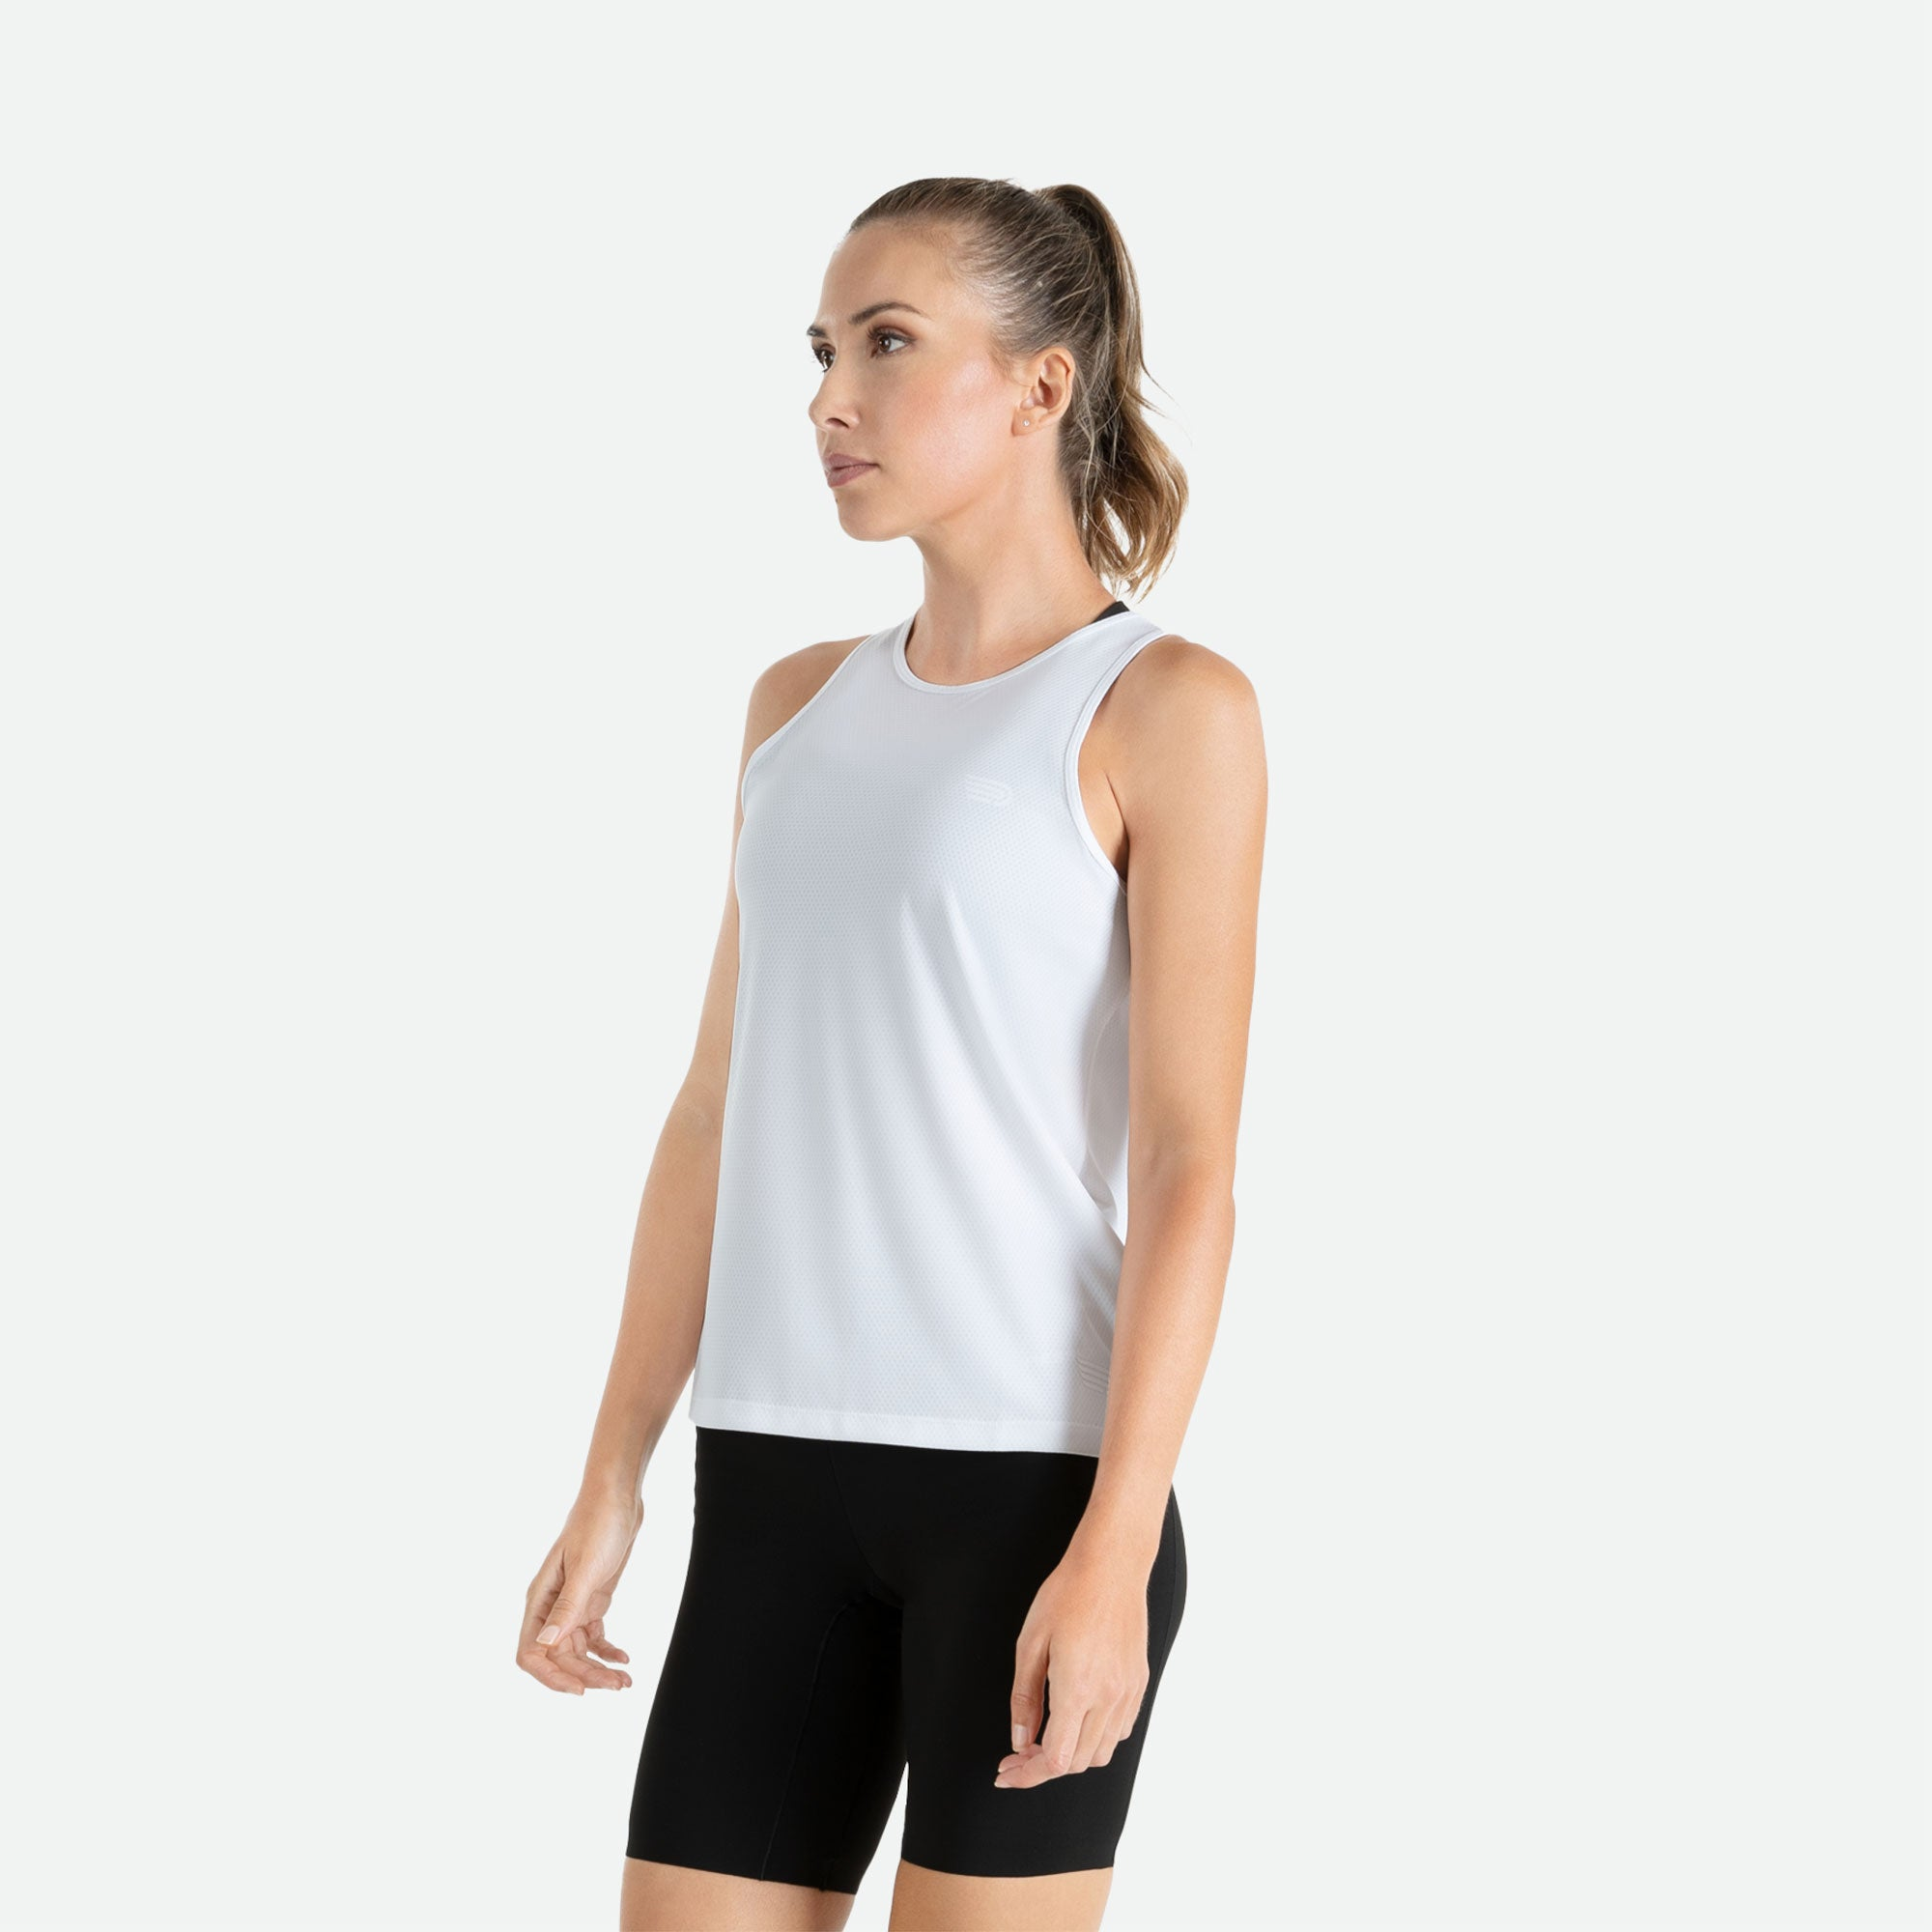 Our Pressio women's white Hāpai wideback singlet features EcoTECH MF fabric which has dual filament recycled polyester yarns from Unifi for superior moisture control to keep you dry.